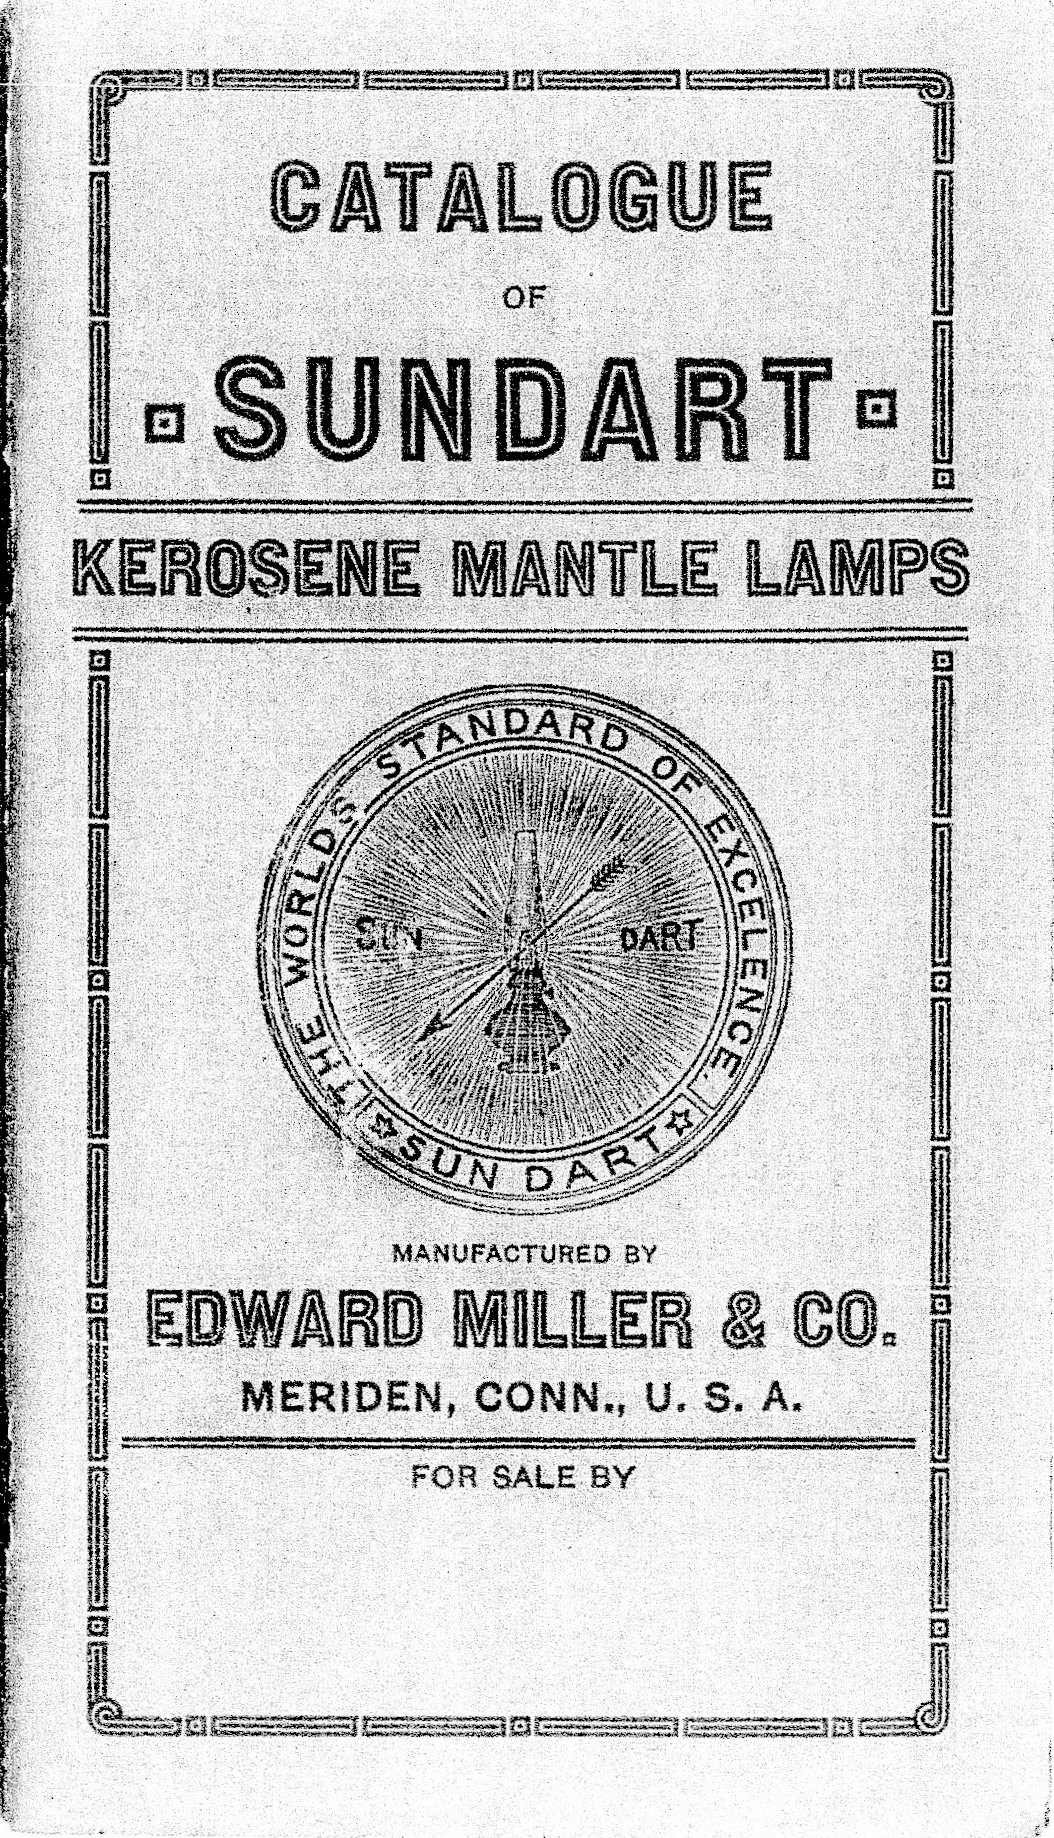 Sundart mantle lamp catalog cover page